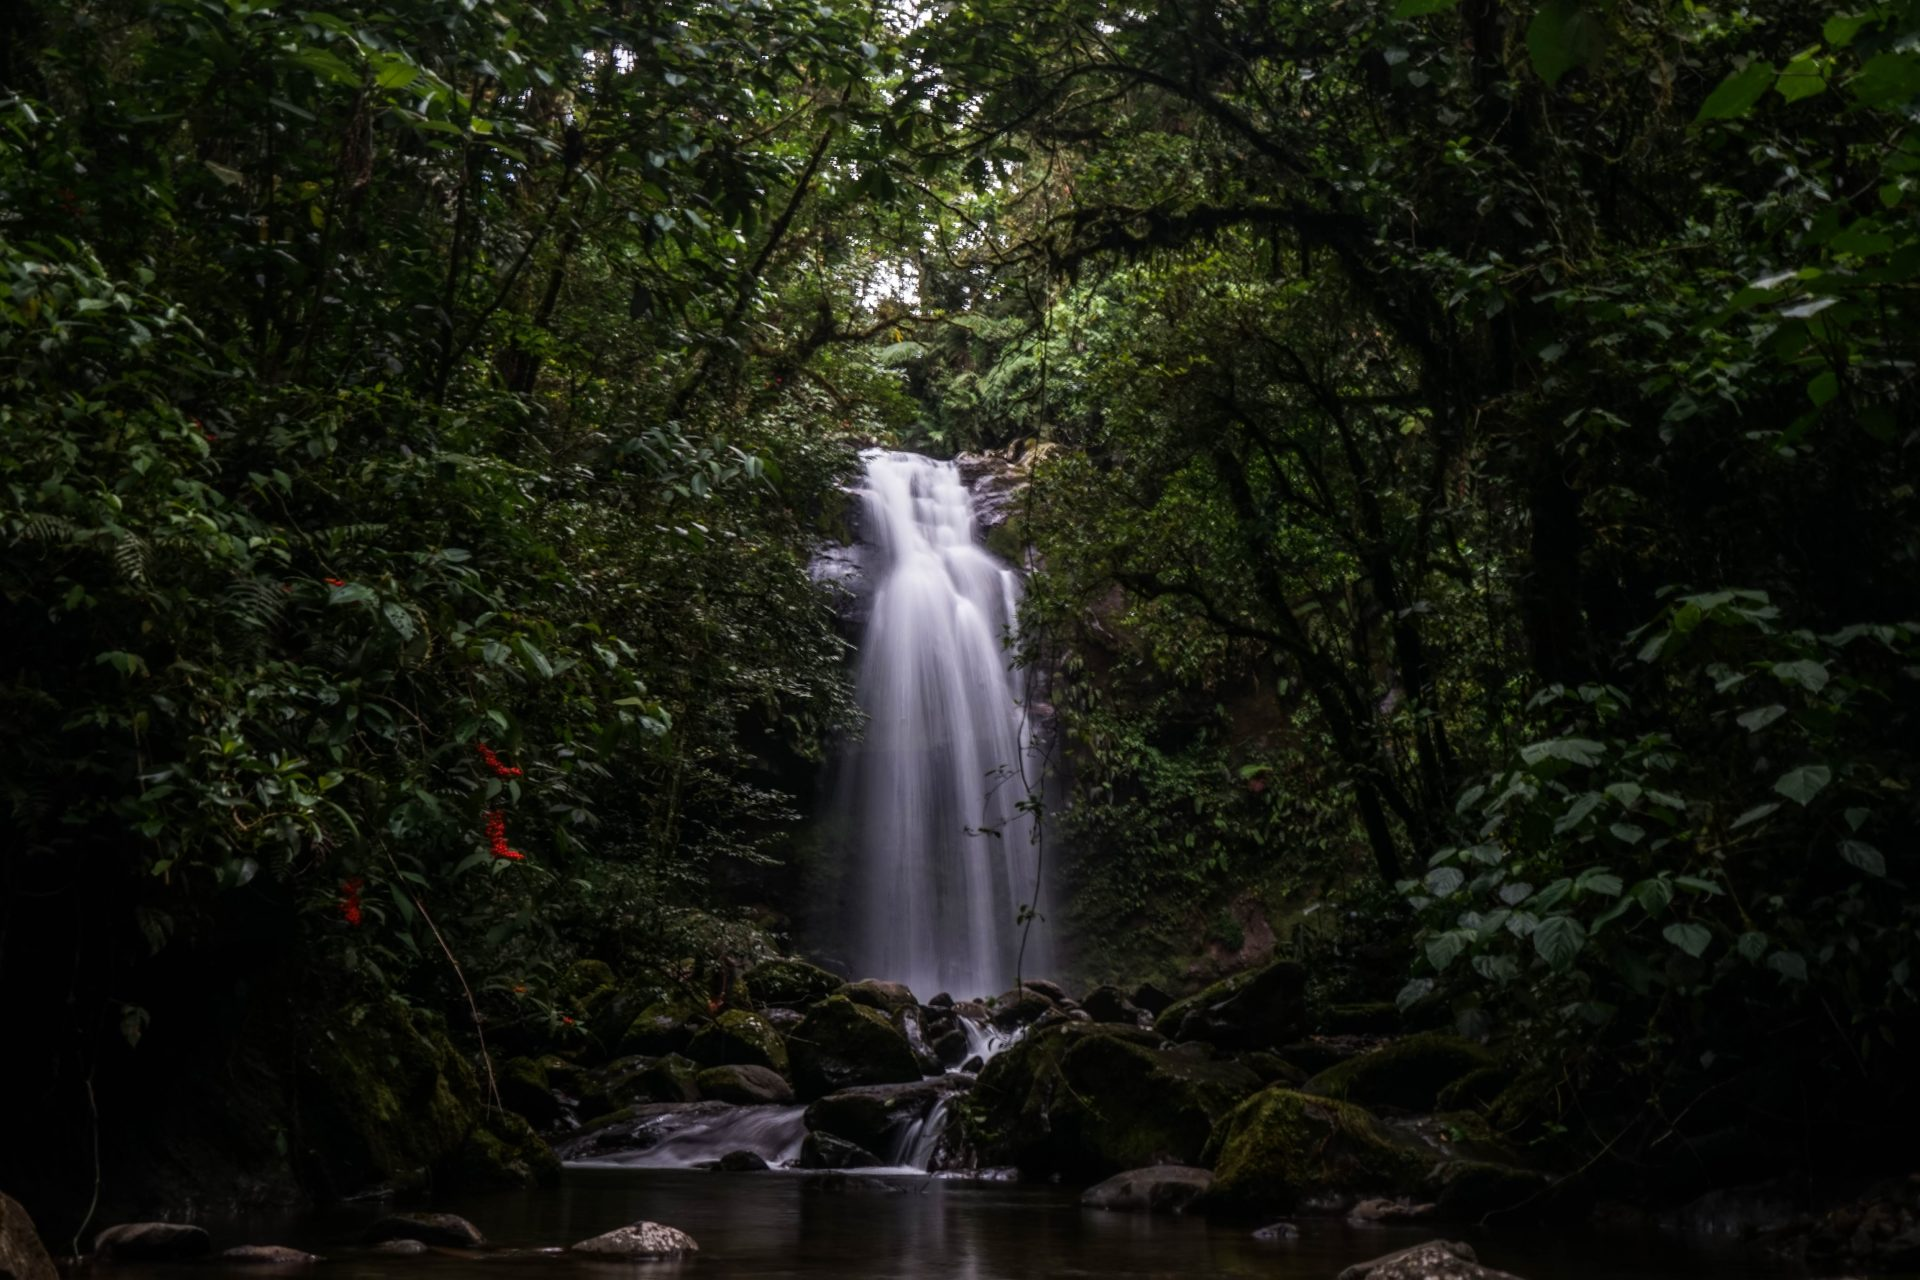 Small waterfall falling in between trees and forming a little pool